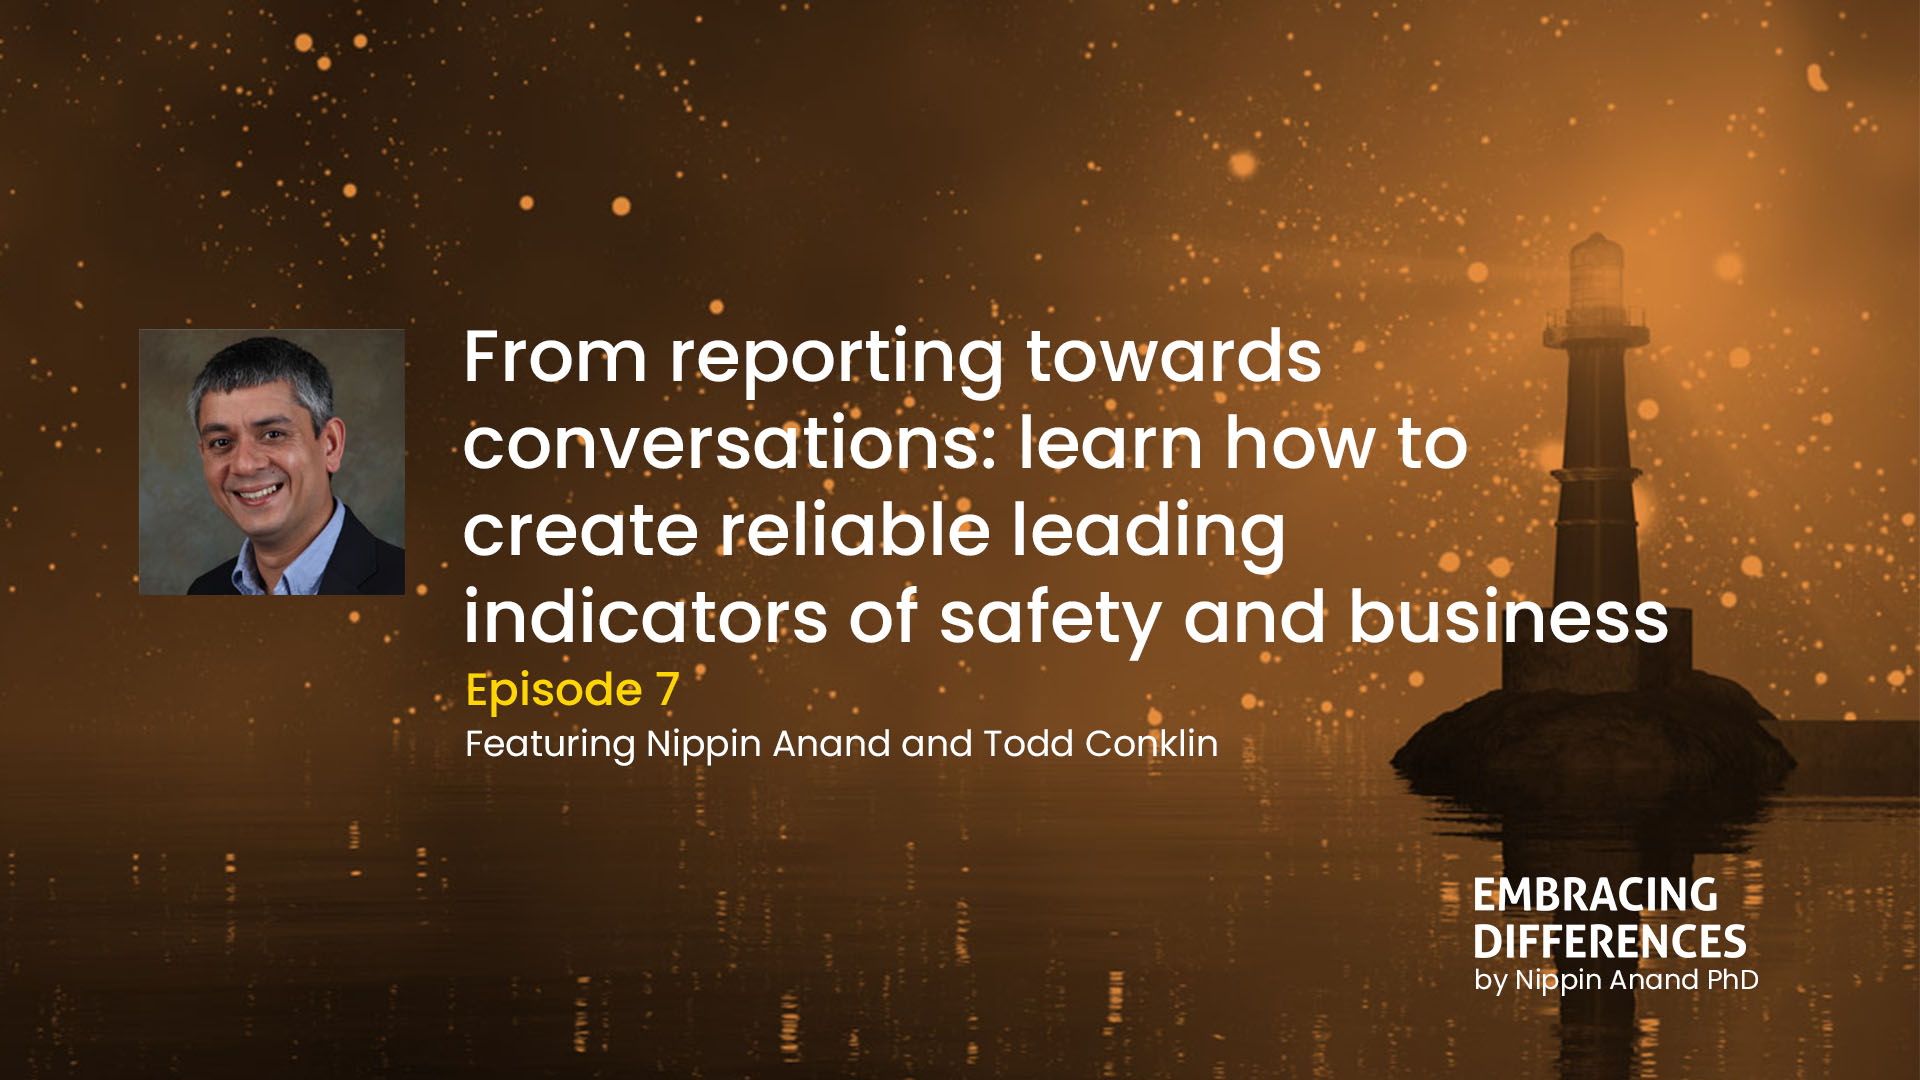 From reporting towards conversations: learn how to create reliable leading indicators of safety and business